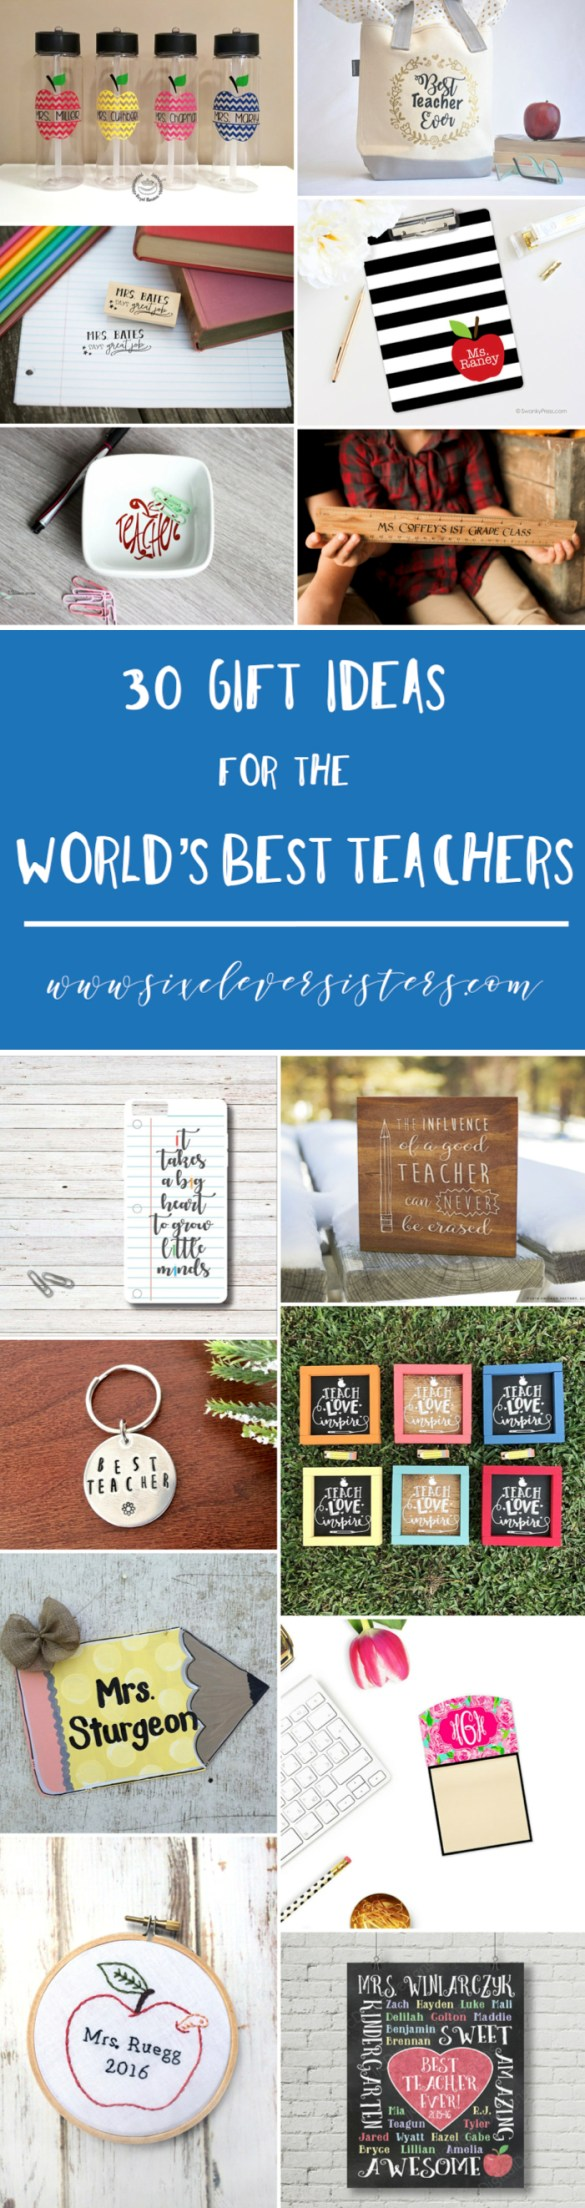 Teacher Gifts | End of Year Teacher Gifts | Teacher Appreciaiton | End of the Year Teacher Gift | Gift Idea for Teacher | Gift Idea for Teacher Appreciaiton | Be sure to thank your teacher this end of the school year for all of their hard work this whole year long! Need some unique ideas in what to give? Check out Six Clever Sisters compilation!